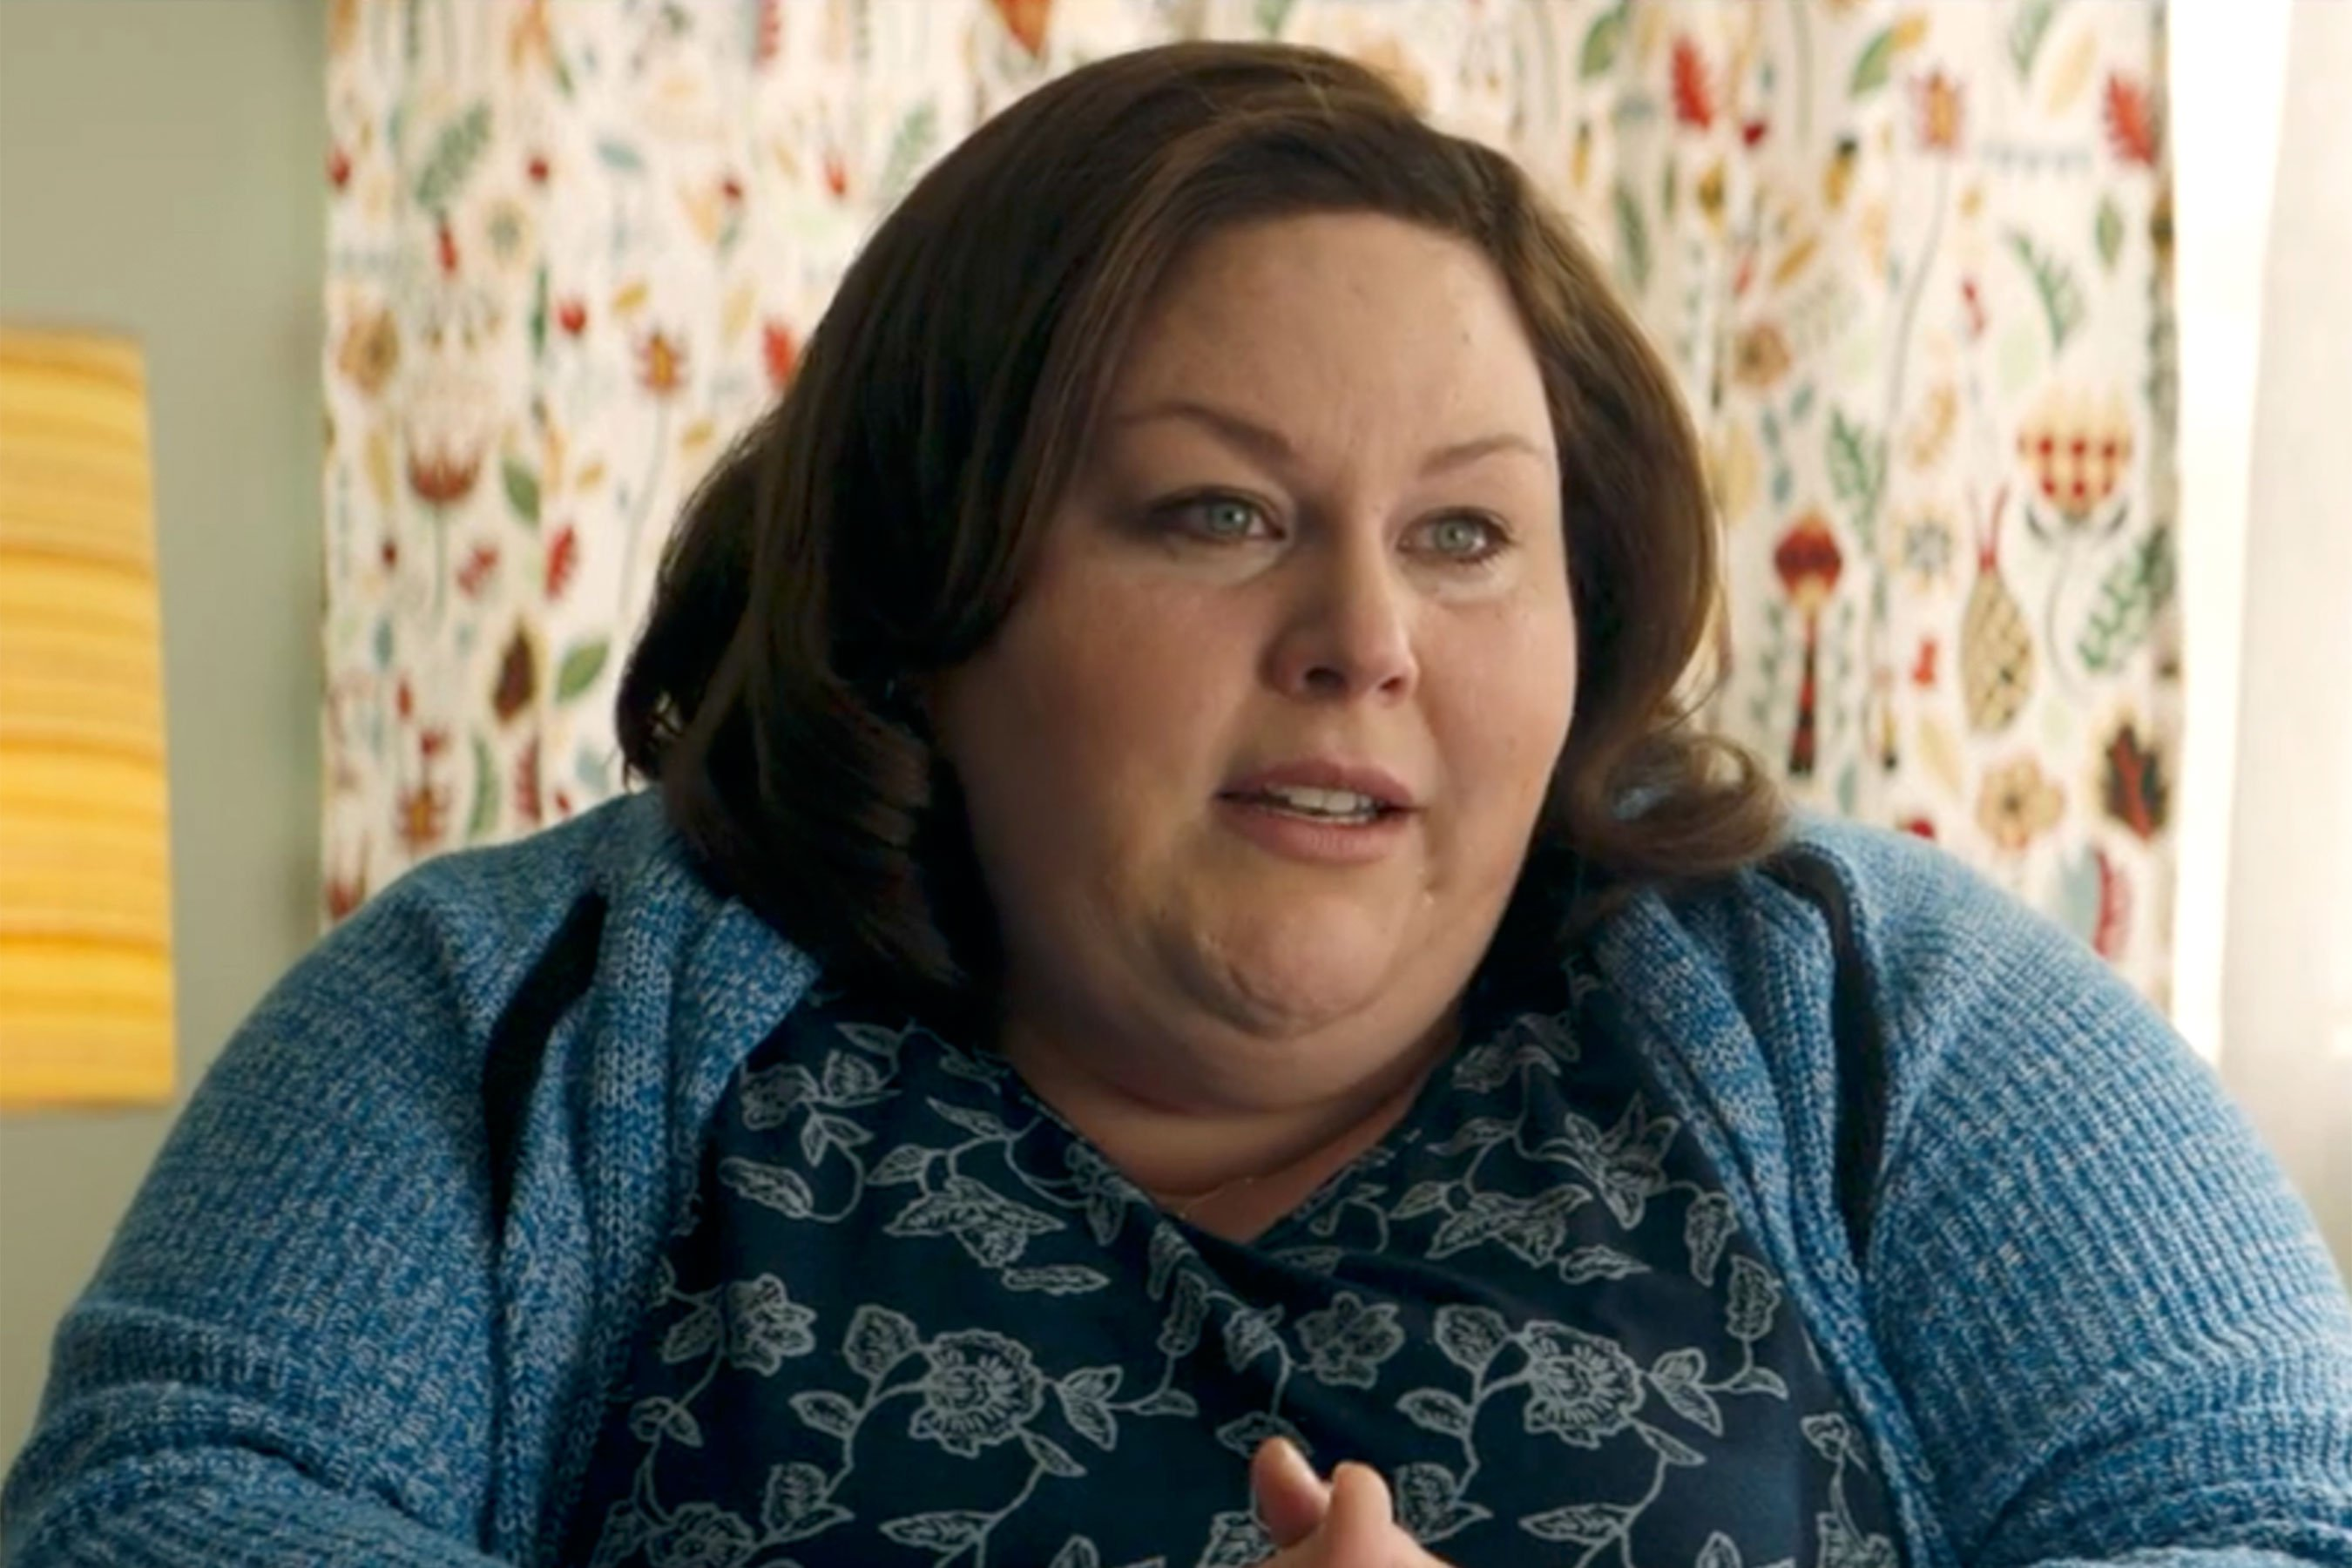 Chrissy Metz is a grieving mother in emotional Breakthrough trailer